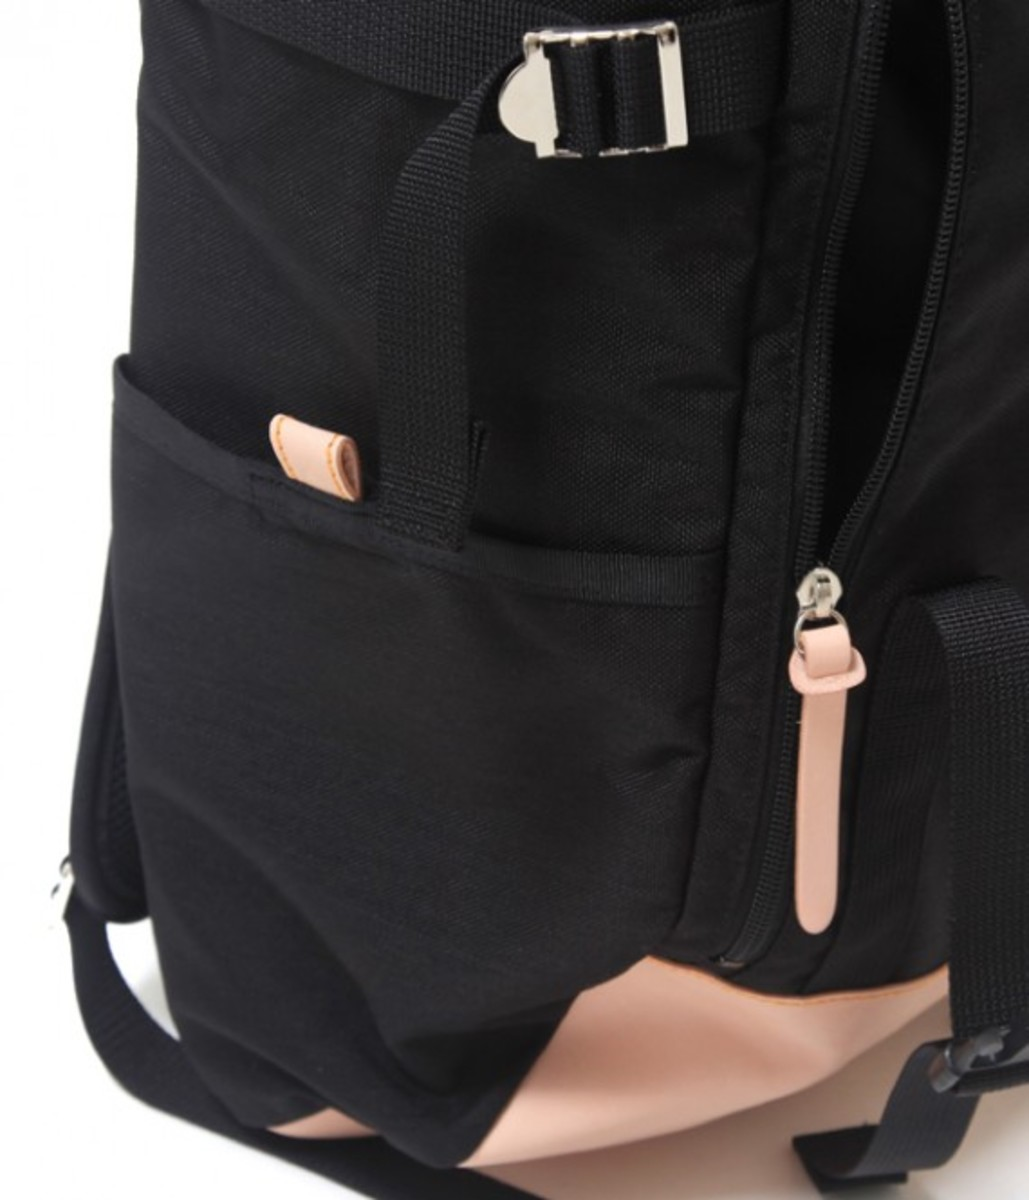 Vegetable Tanned Nylon Ruck Sack 7